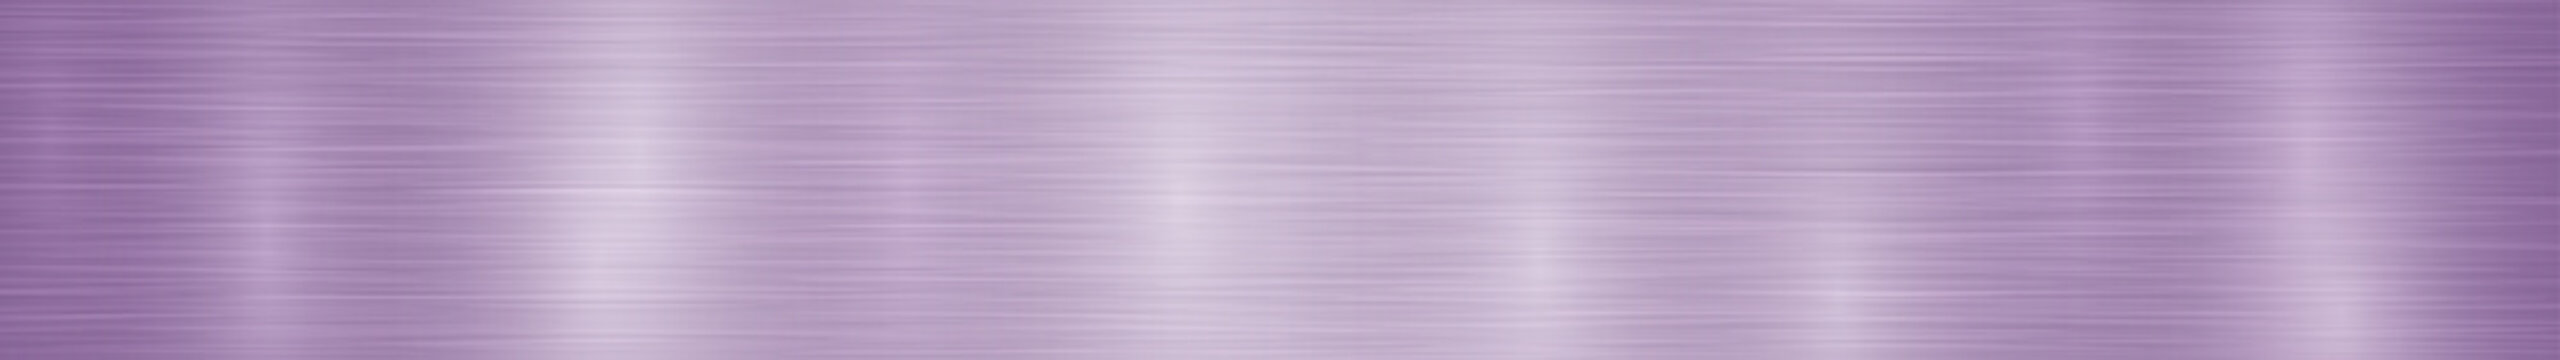 Abstract horizontal metal banner or background with glares in light purple colors